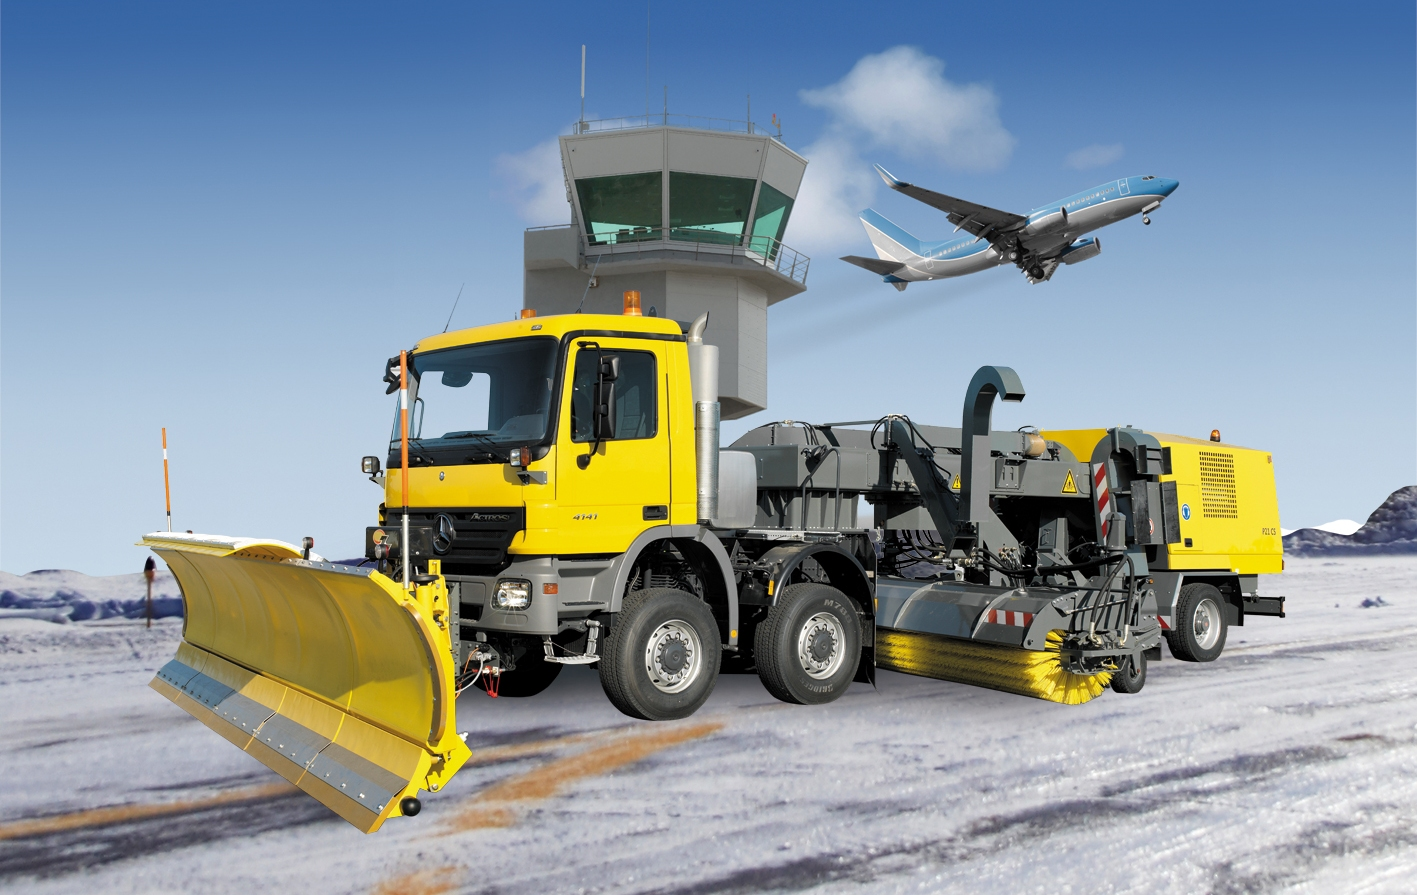 Blower Snow Removal Equipment : Airport snow clearing zaugg